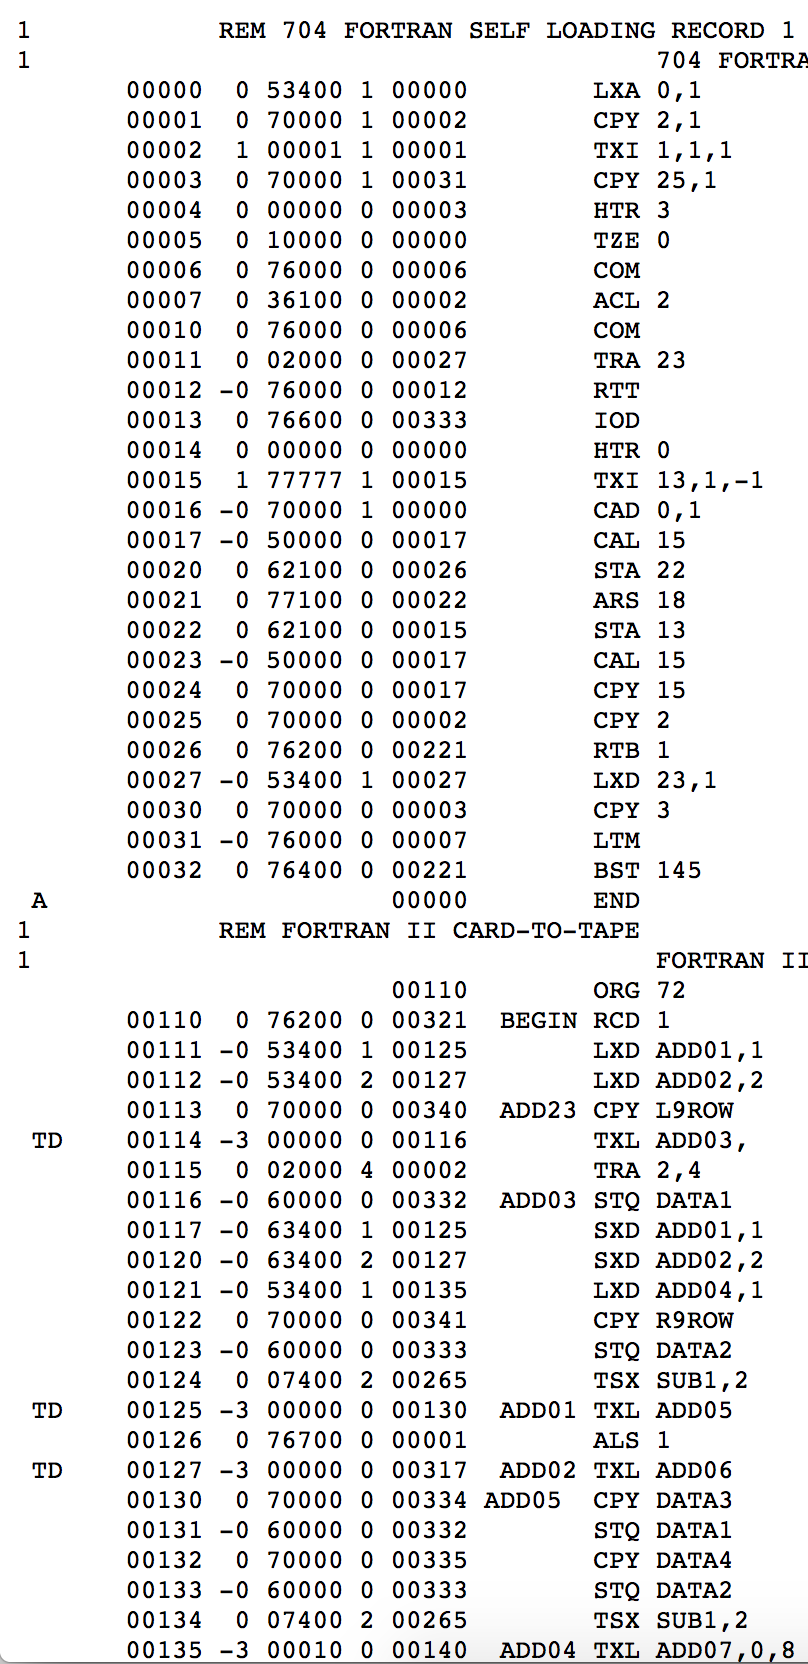 Part of source for the Fortran II compiler for IBM 704.